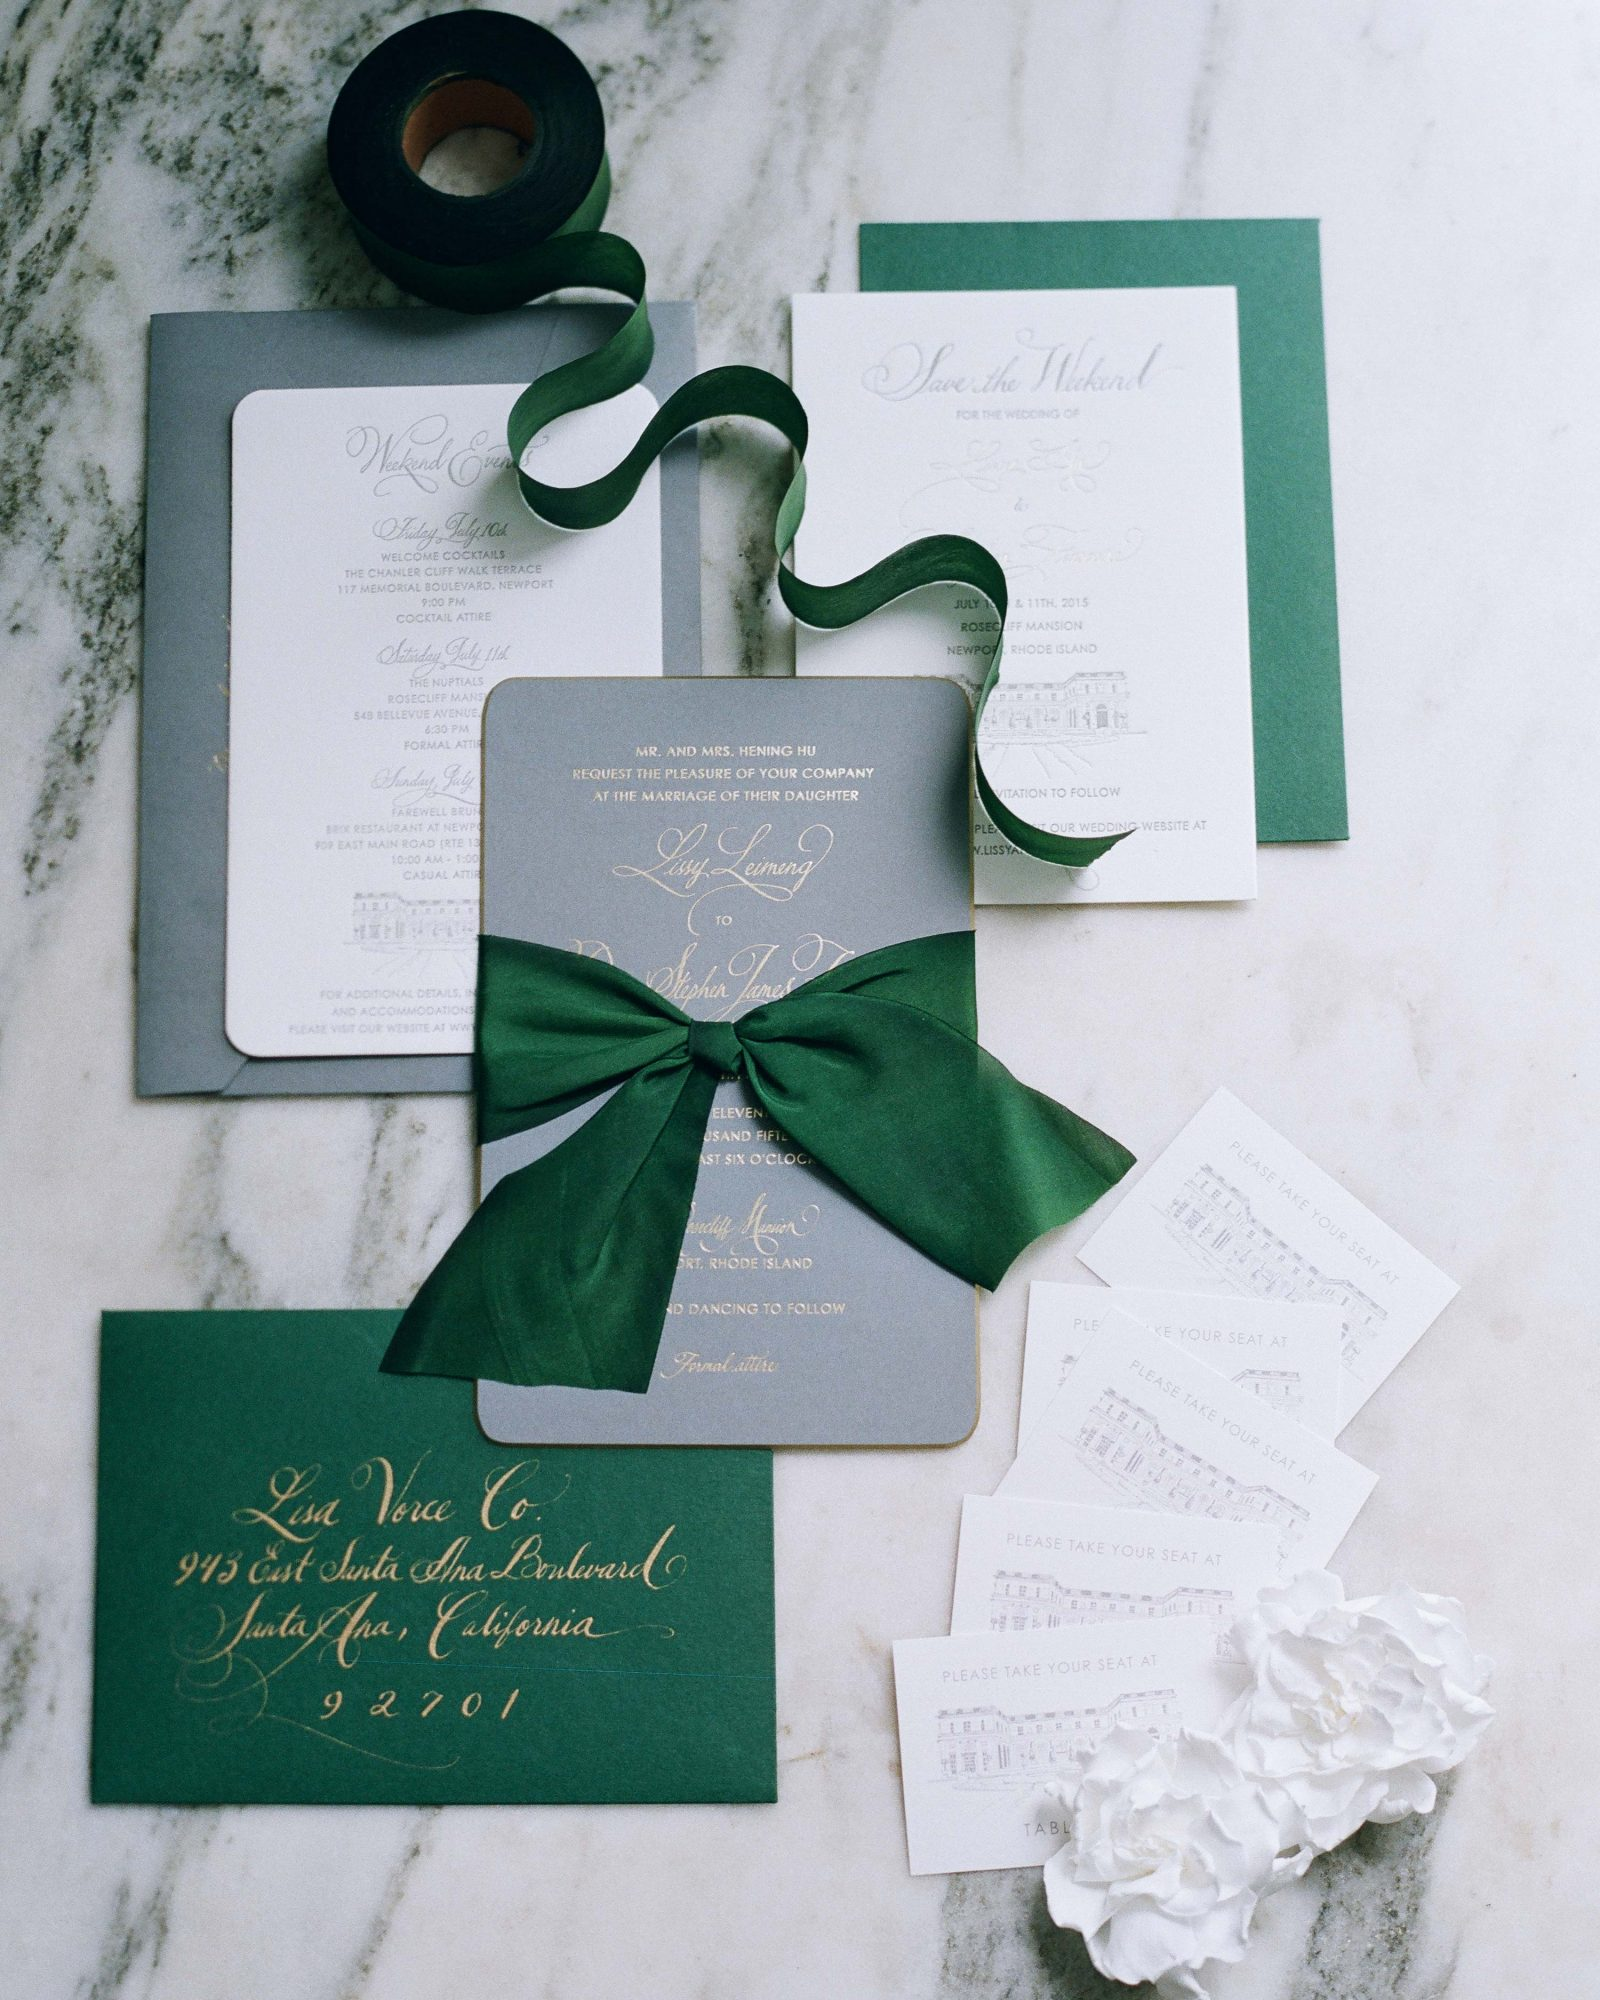 lissy-steven-wedding-newport-invitation-027-elizabethmessina-s112907-0516.jpg